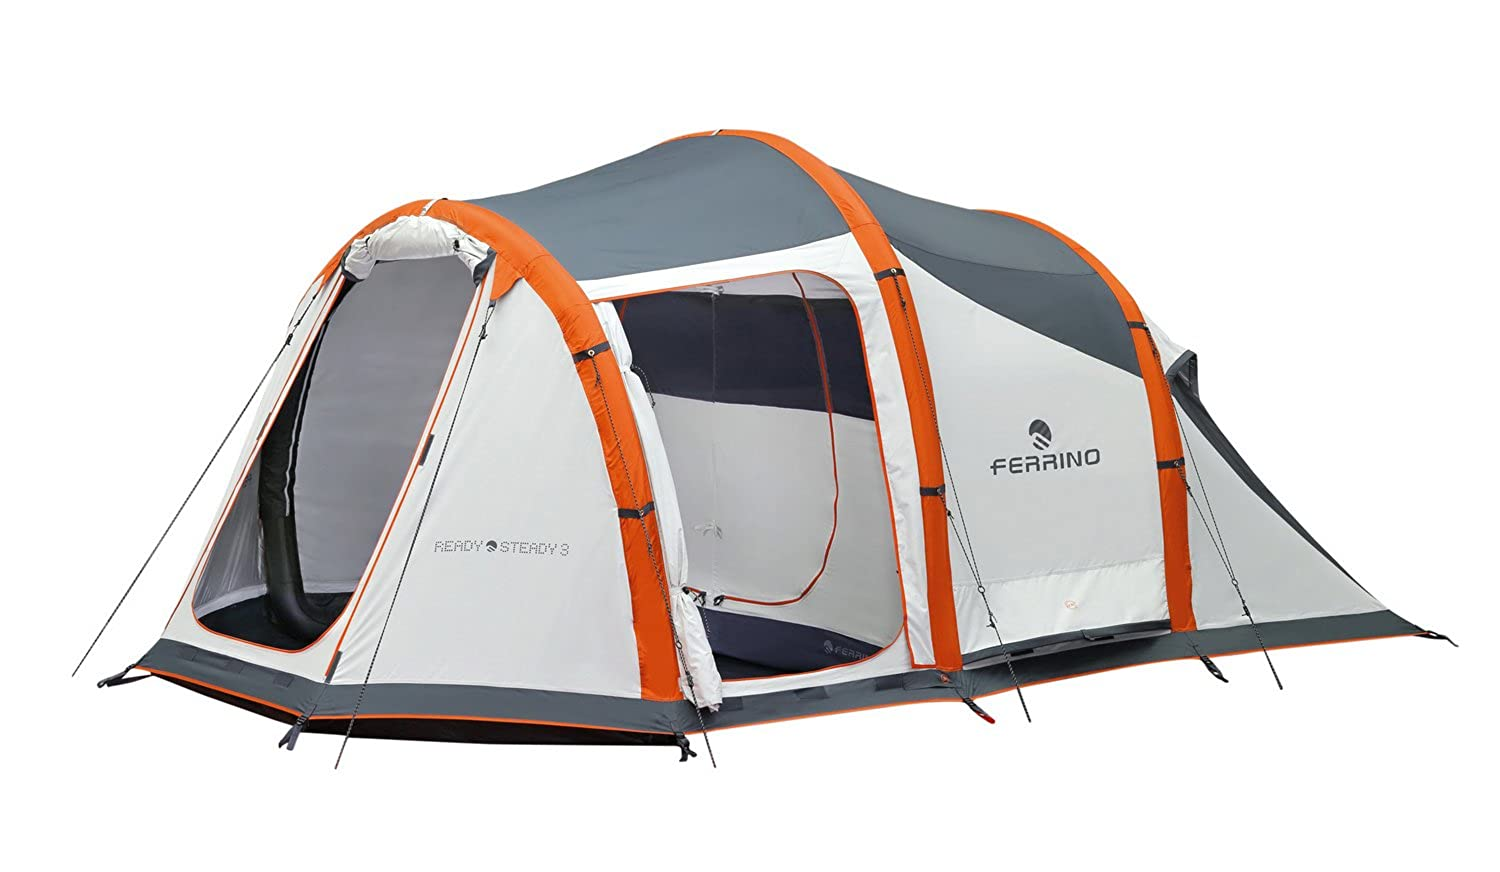 FERRINO READY STEADY 3 TENT PNEUMATIC